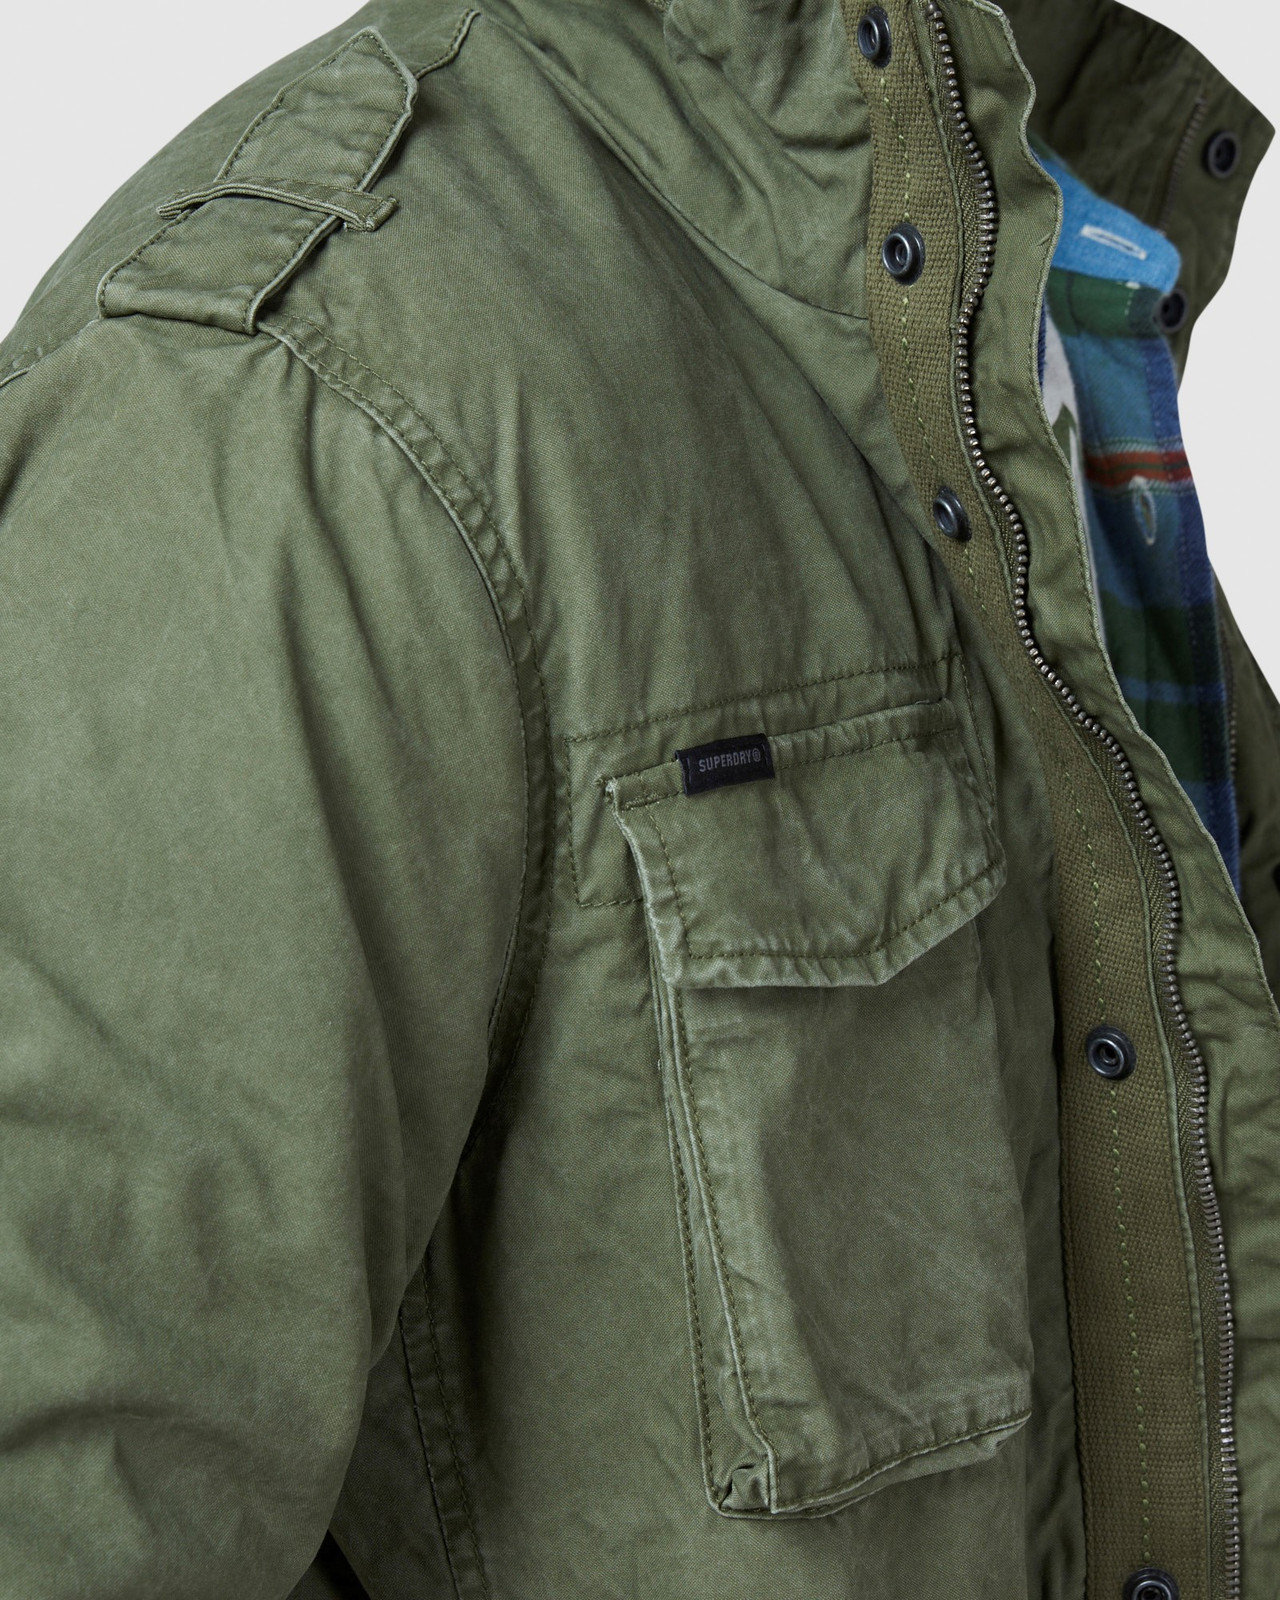 Superdry Mens CLASSIC ROOKIE JACKET Green Military Jackets 7